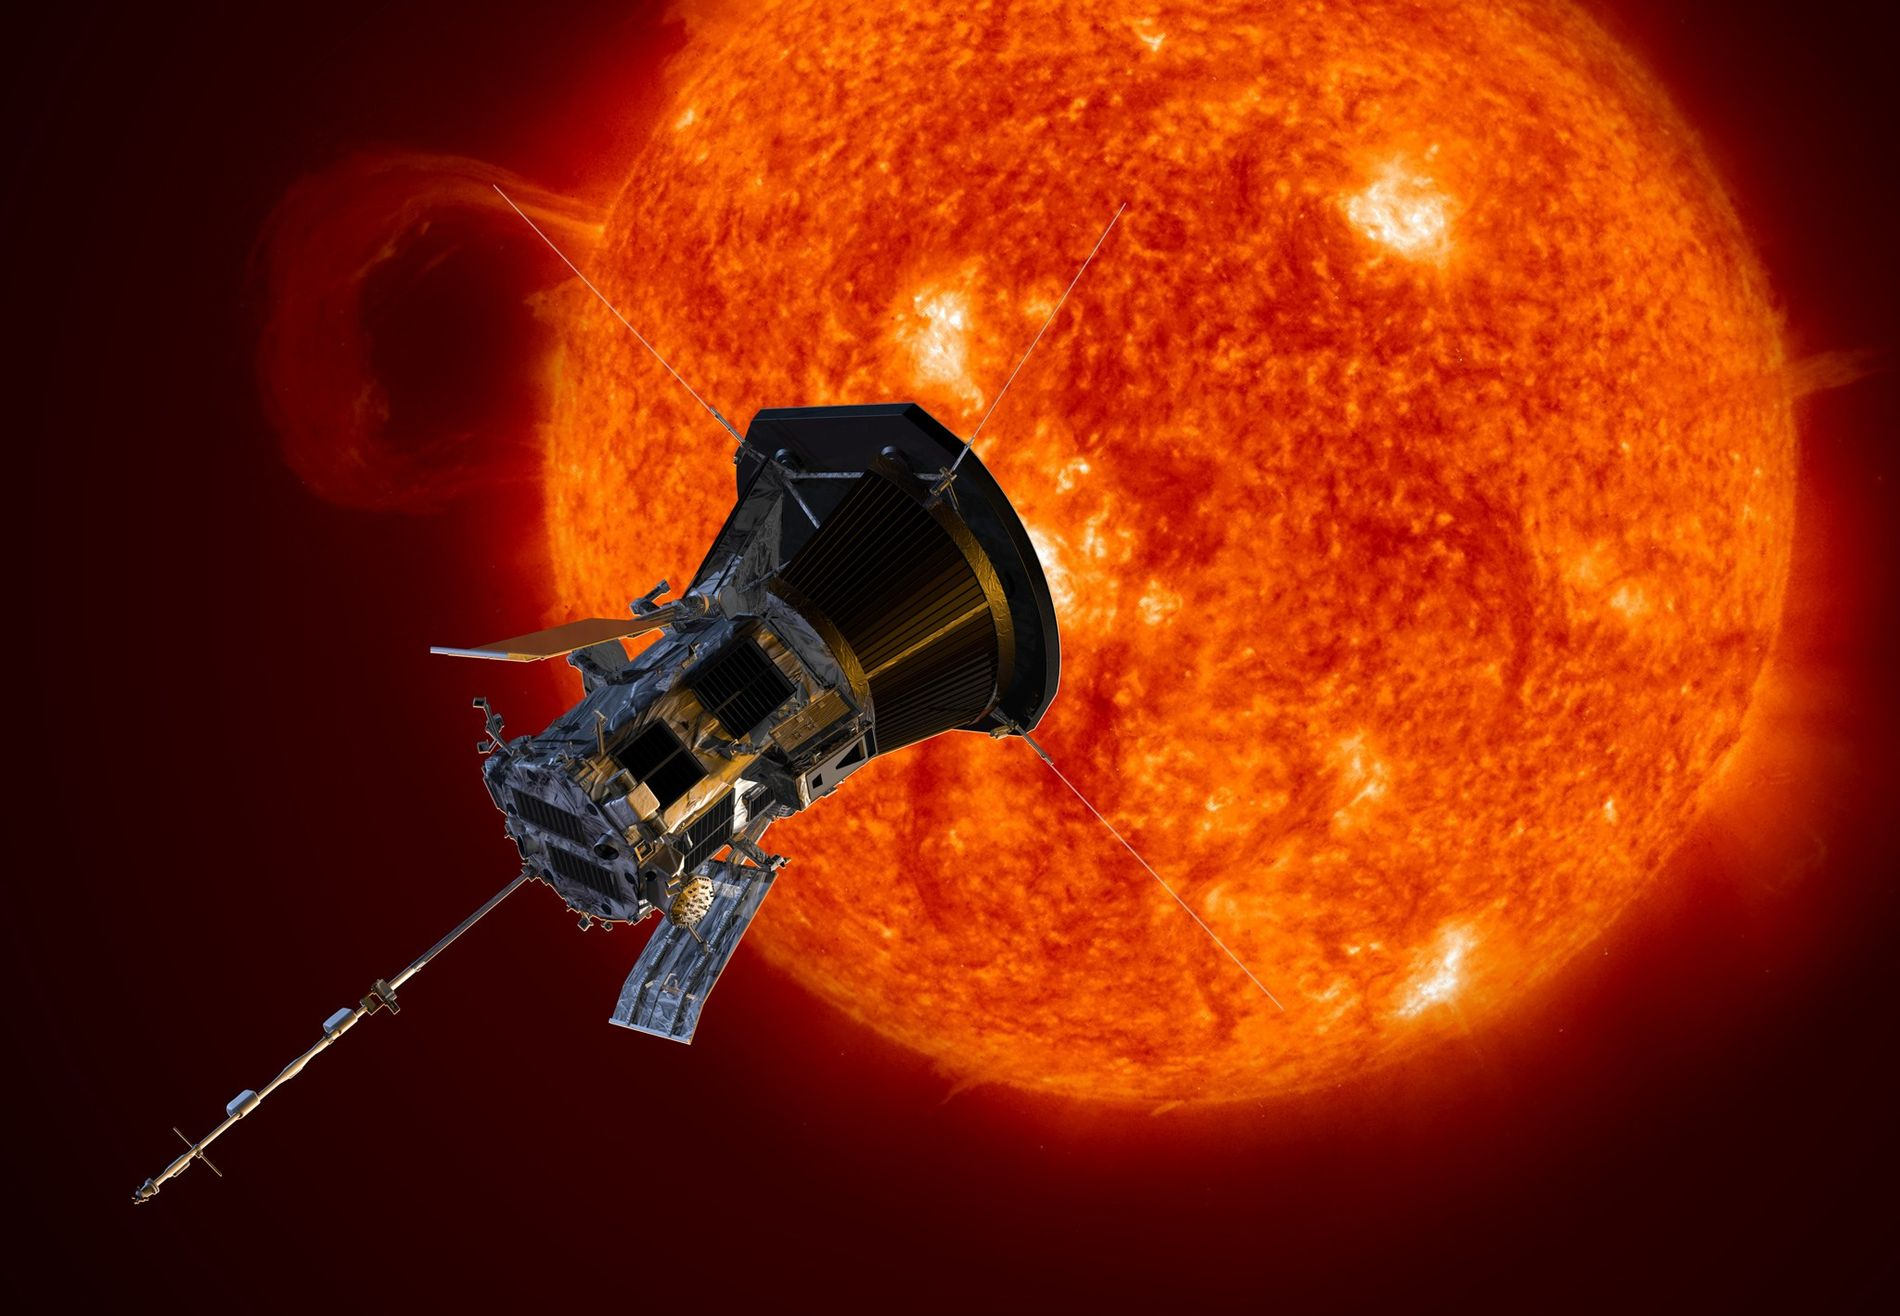 The sun keeps getting stranger, dive-bombing solar probe shows